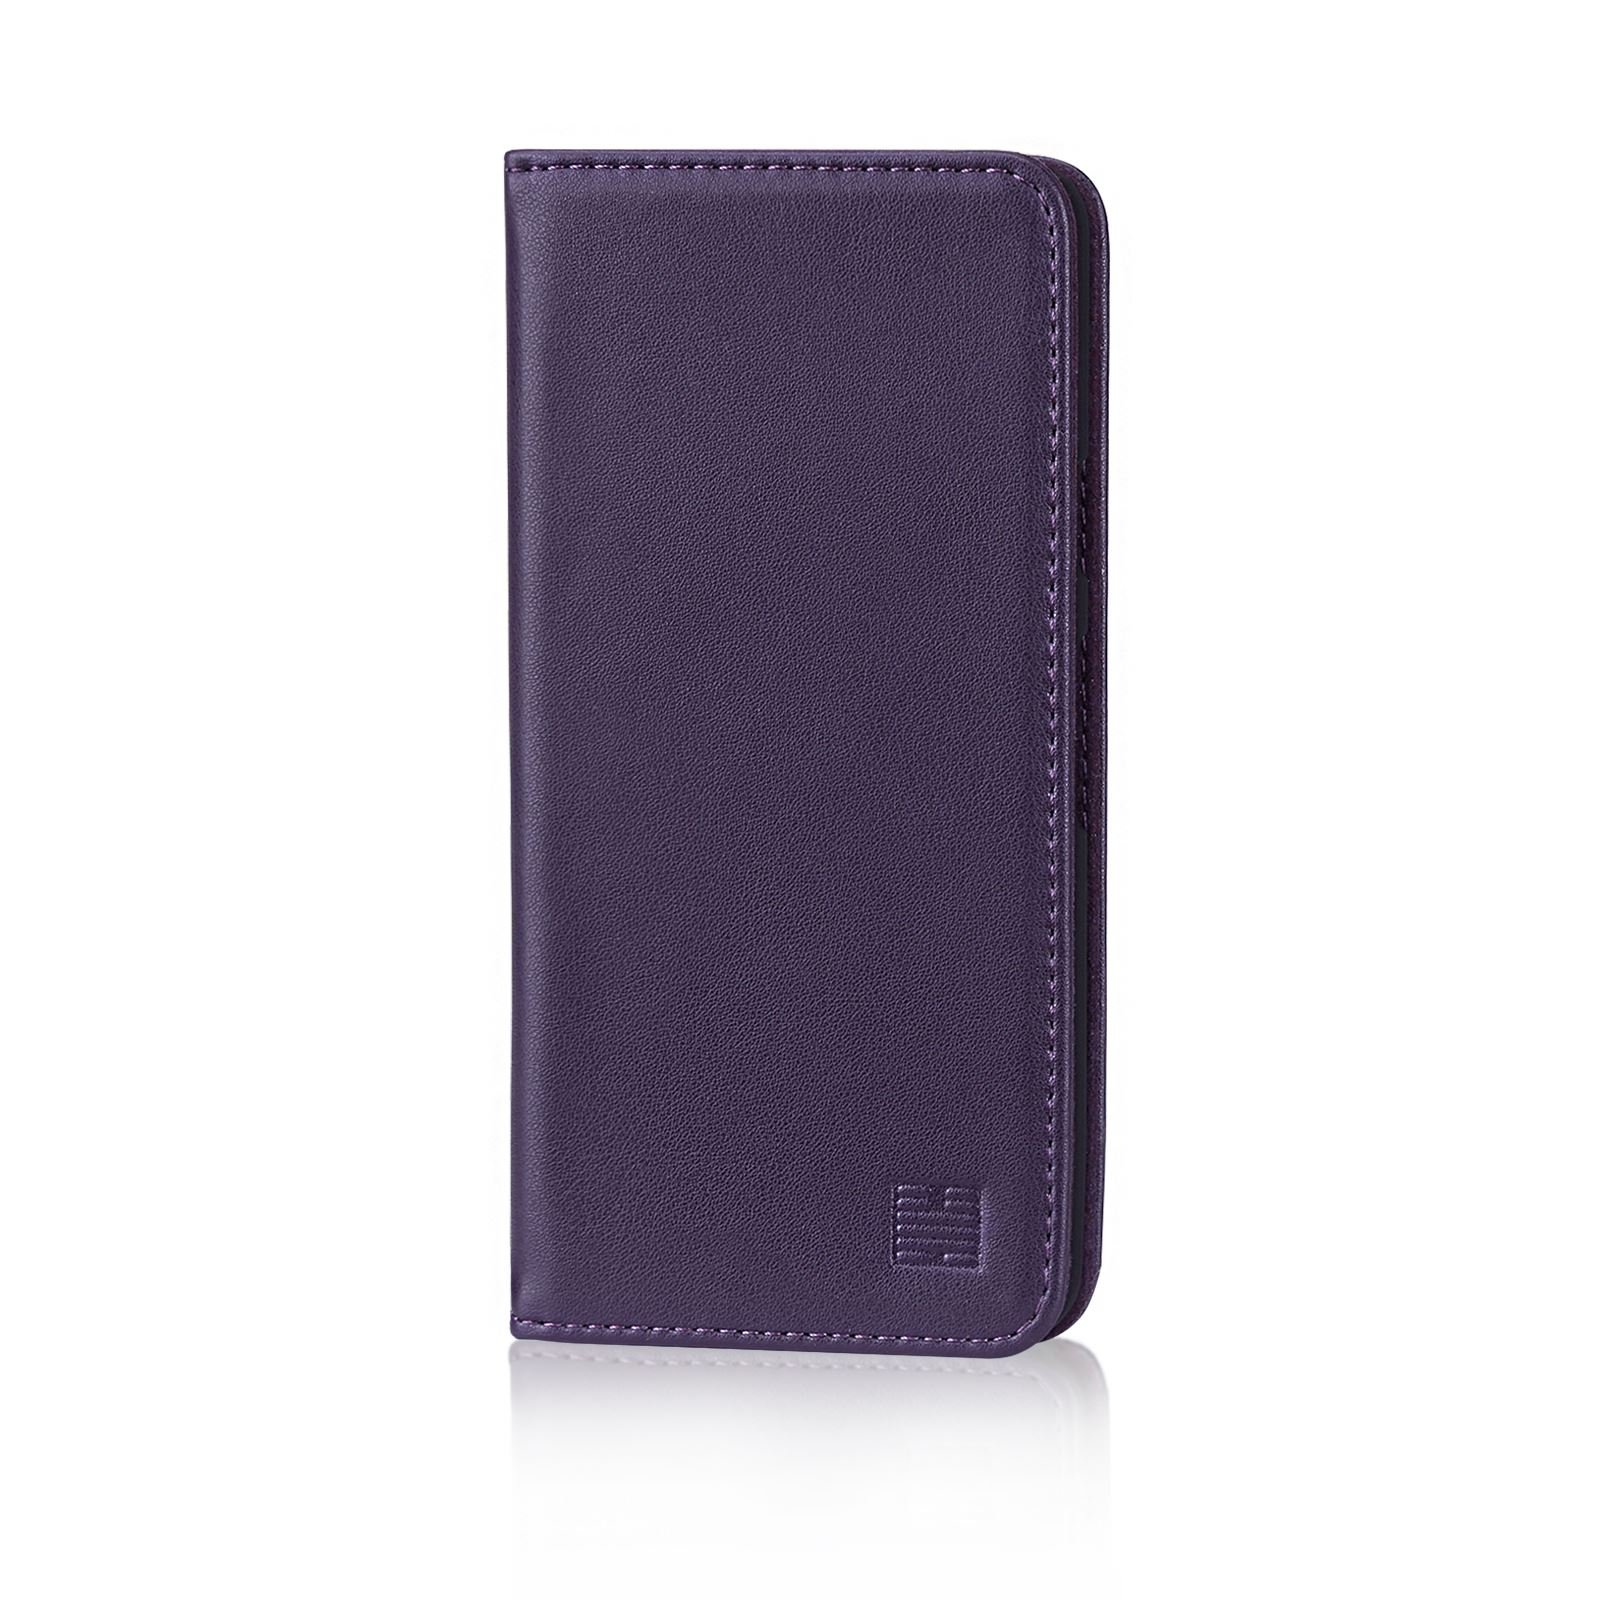 32nd Classic Series - Real Leather Book Wallet Case Cover for Google Pixel 2, Real Leather Design with Card Slot, Magnetic Closure and Built in Stand - Aubergine